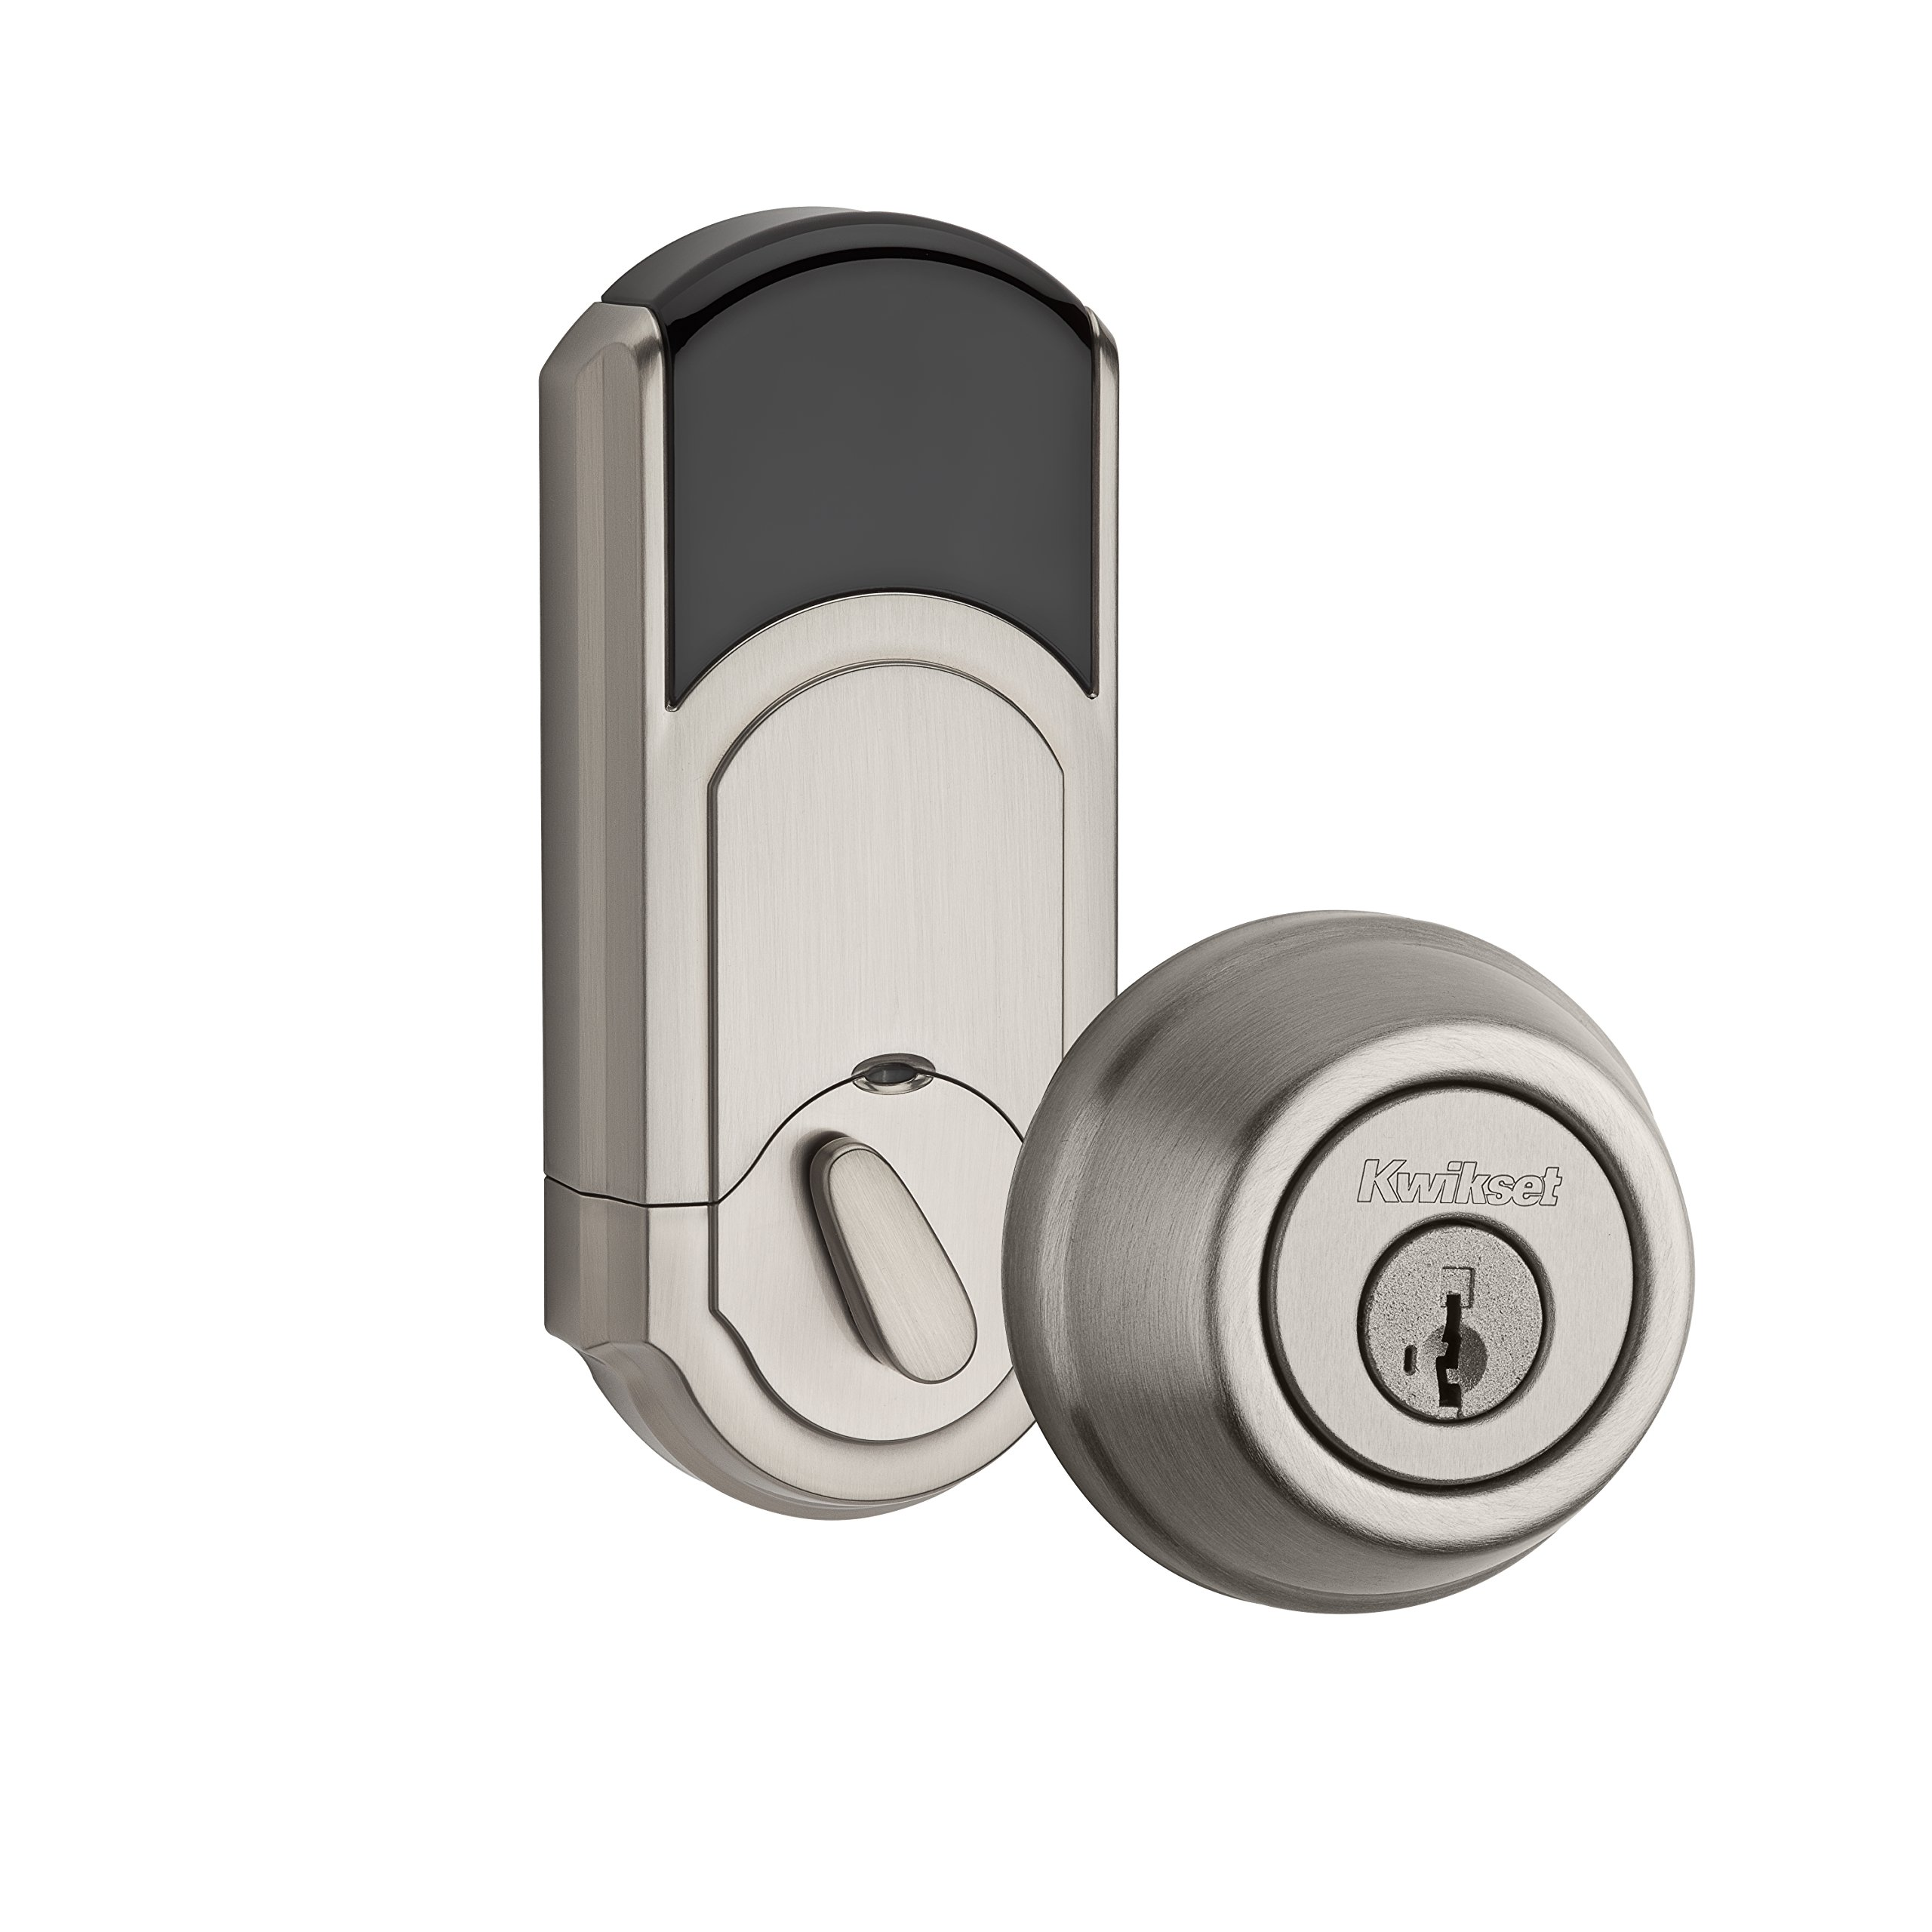 Kwikset 910 Z-Wave Signature Series Traditional Electronic Deadbolt in Satin Nickel